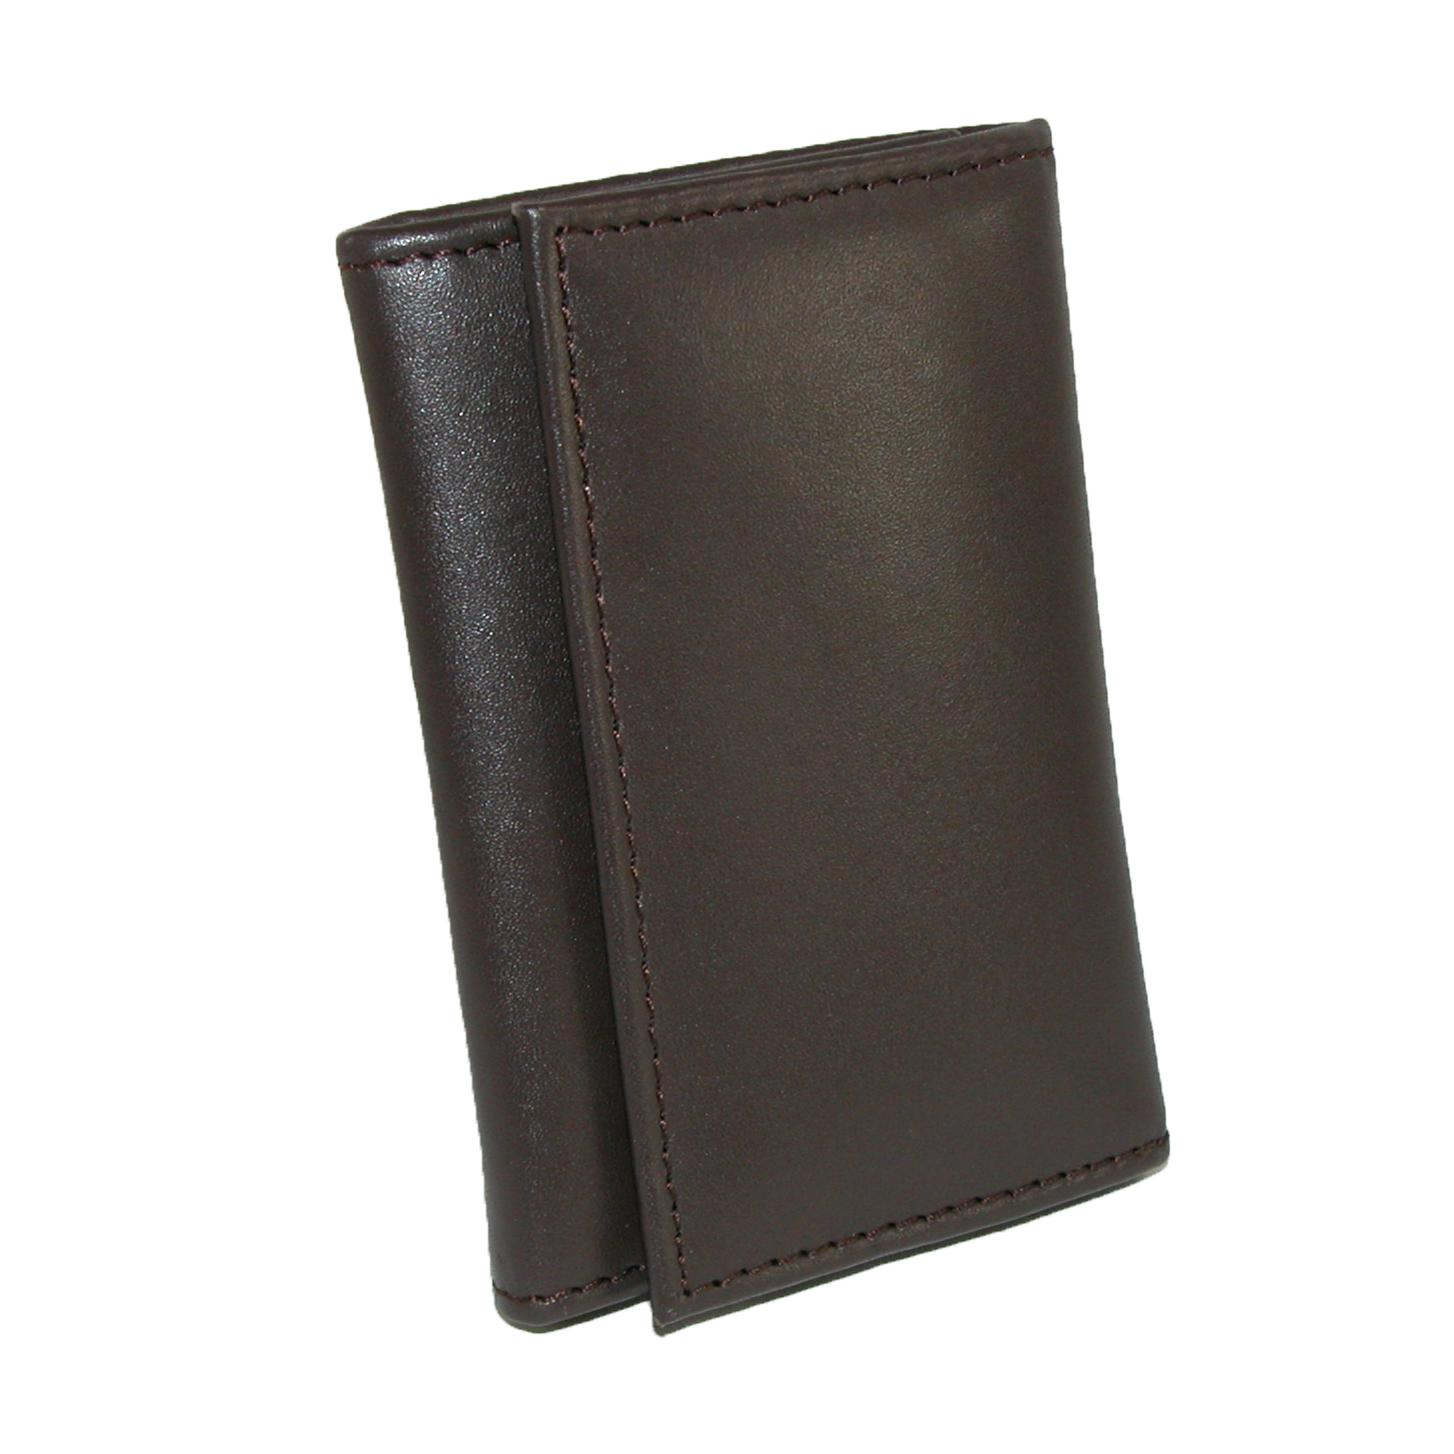 Winn_International_Leather_Casual_Trifold_Key_Case_Wallet___one_size